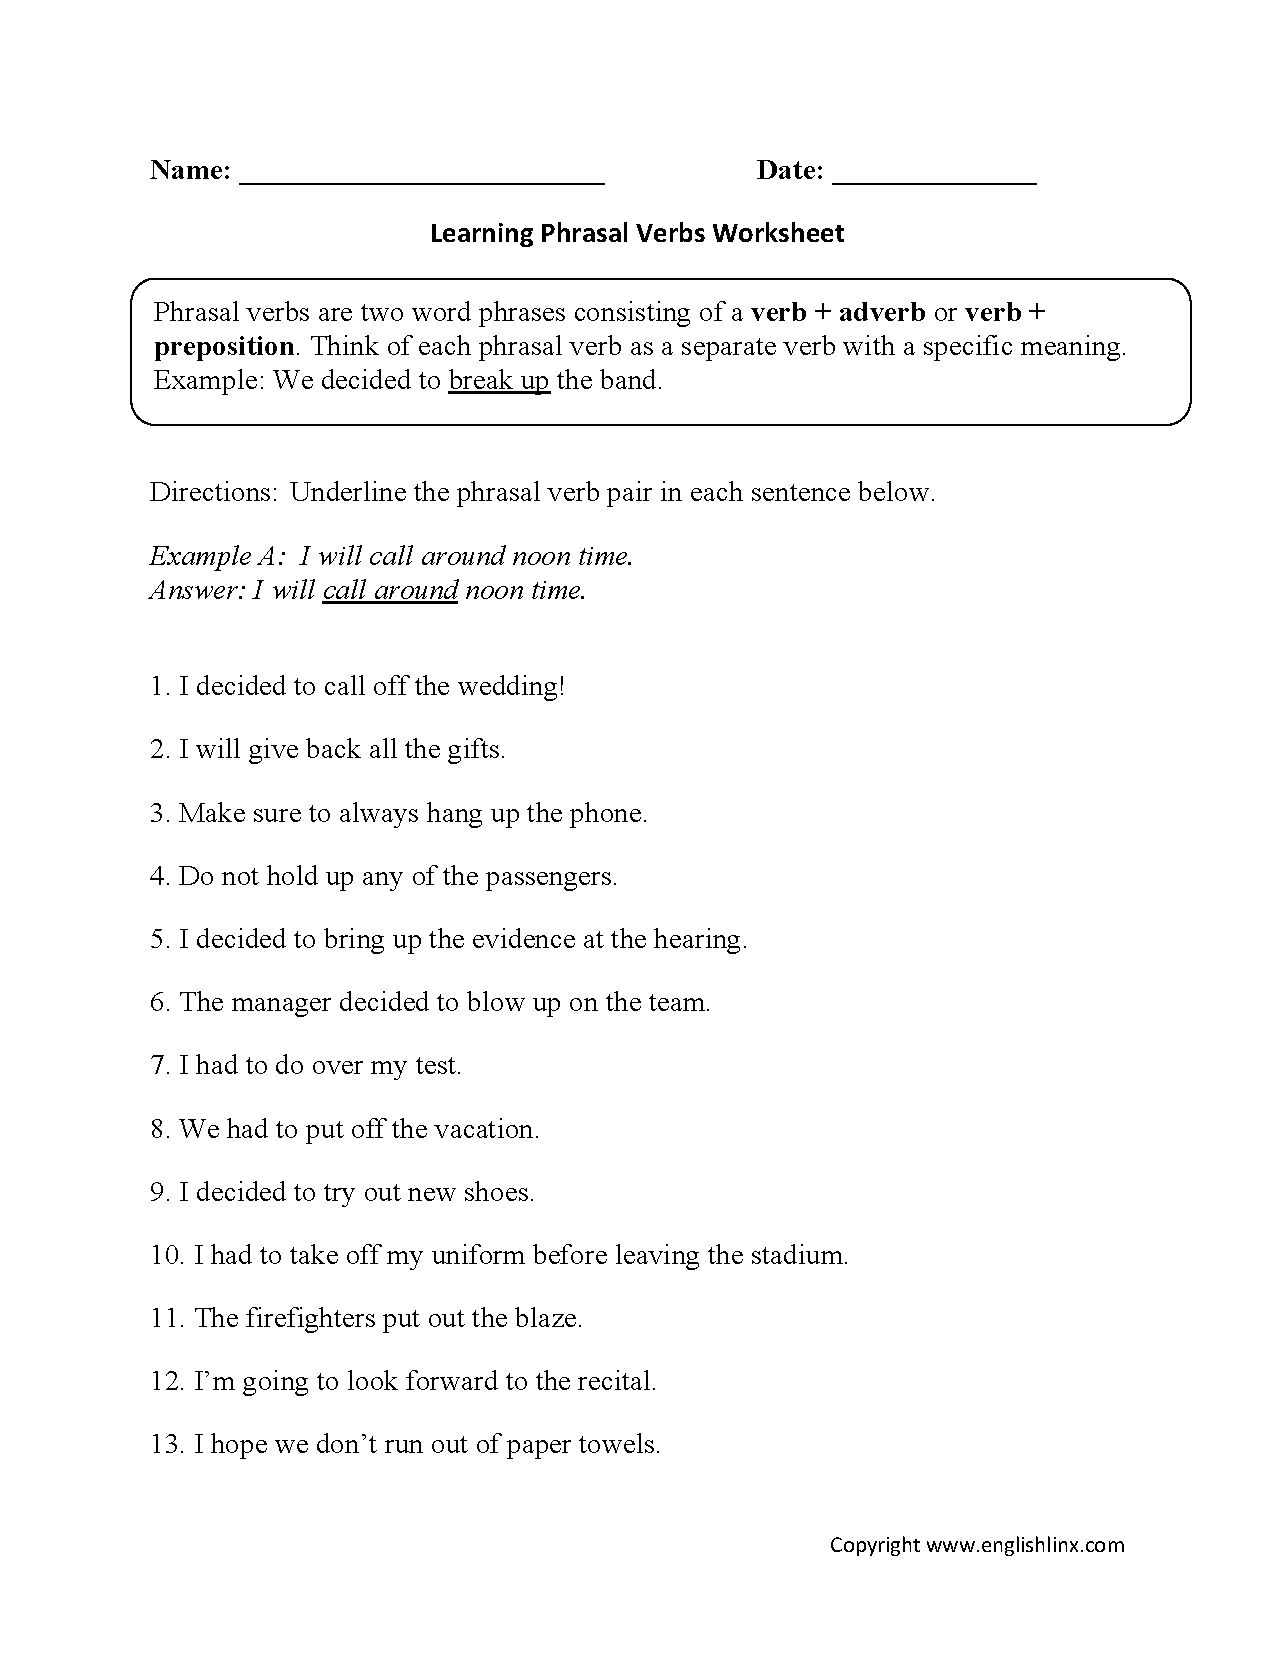 Learning Phrasal Verbs Worksheet